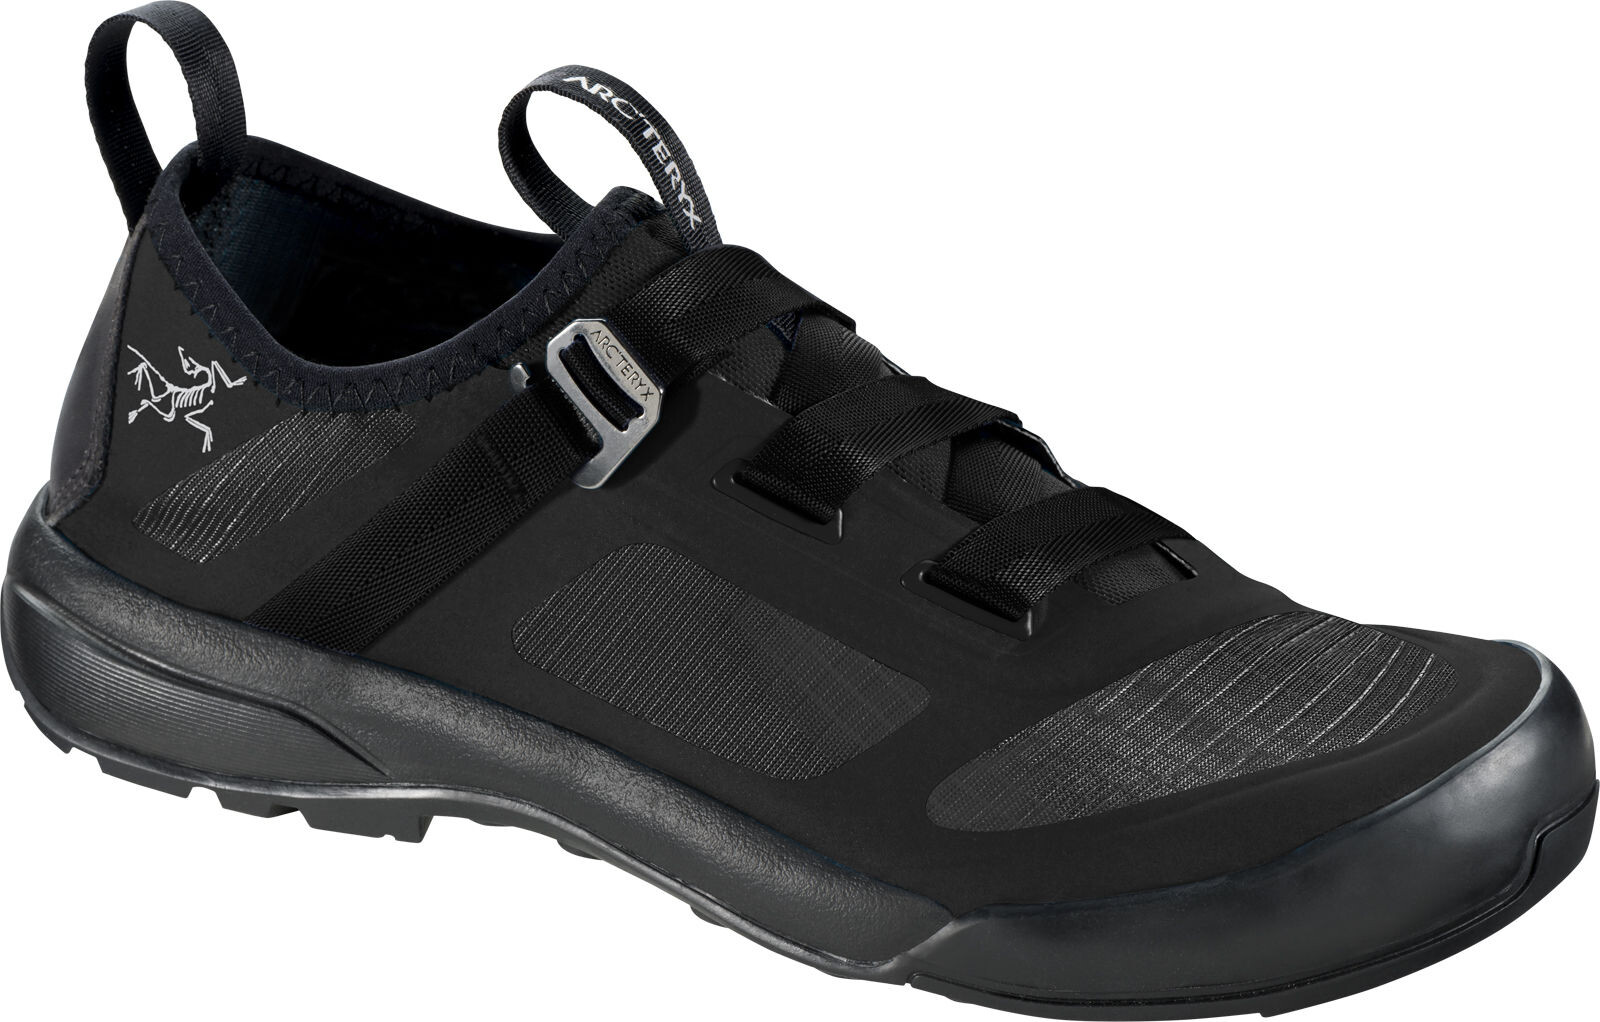 New Balance Approach Shoes